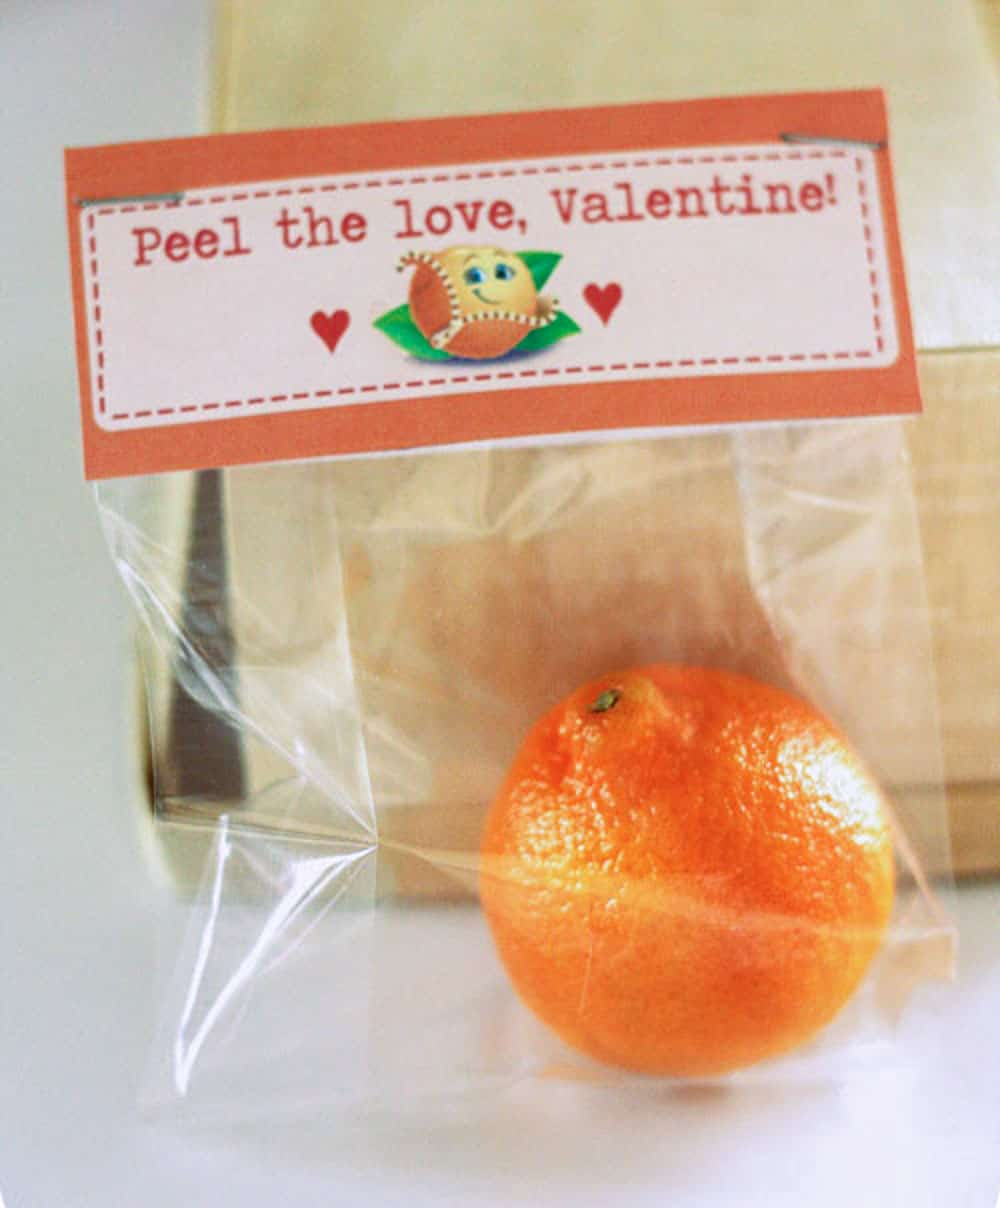 Cutie Orange Valentine in a plastic bag with a topper that says Peel the Love Valentine on white background.